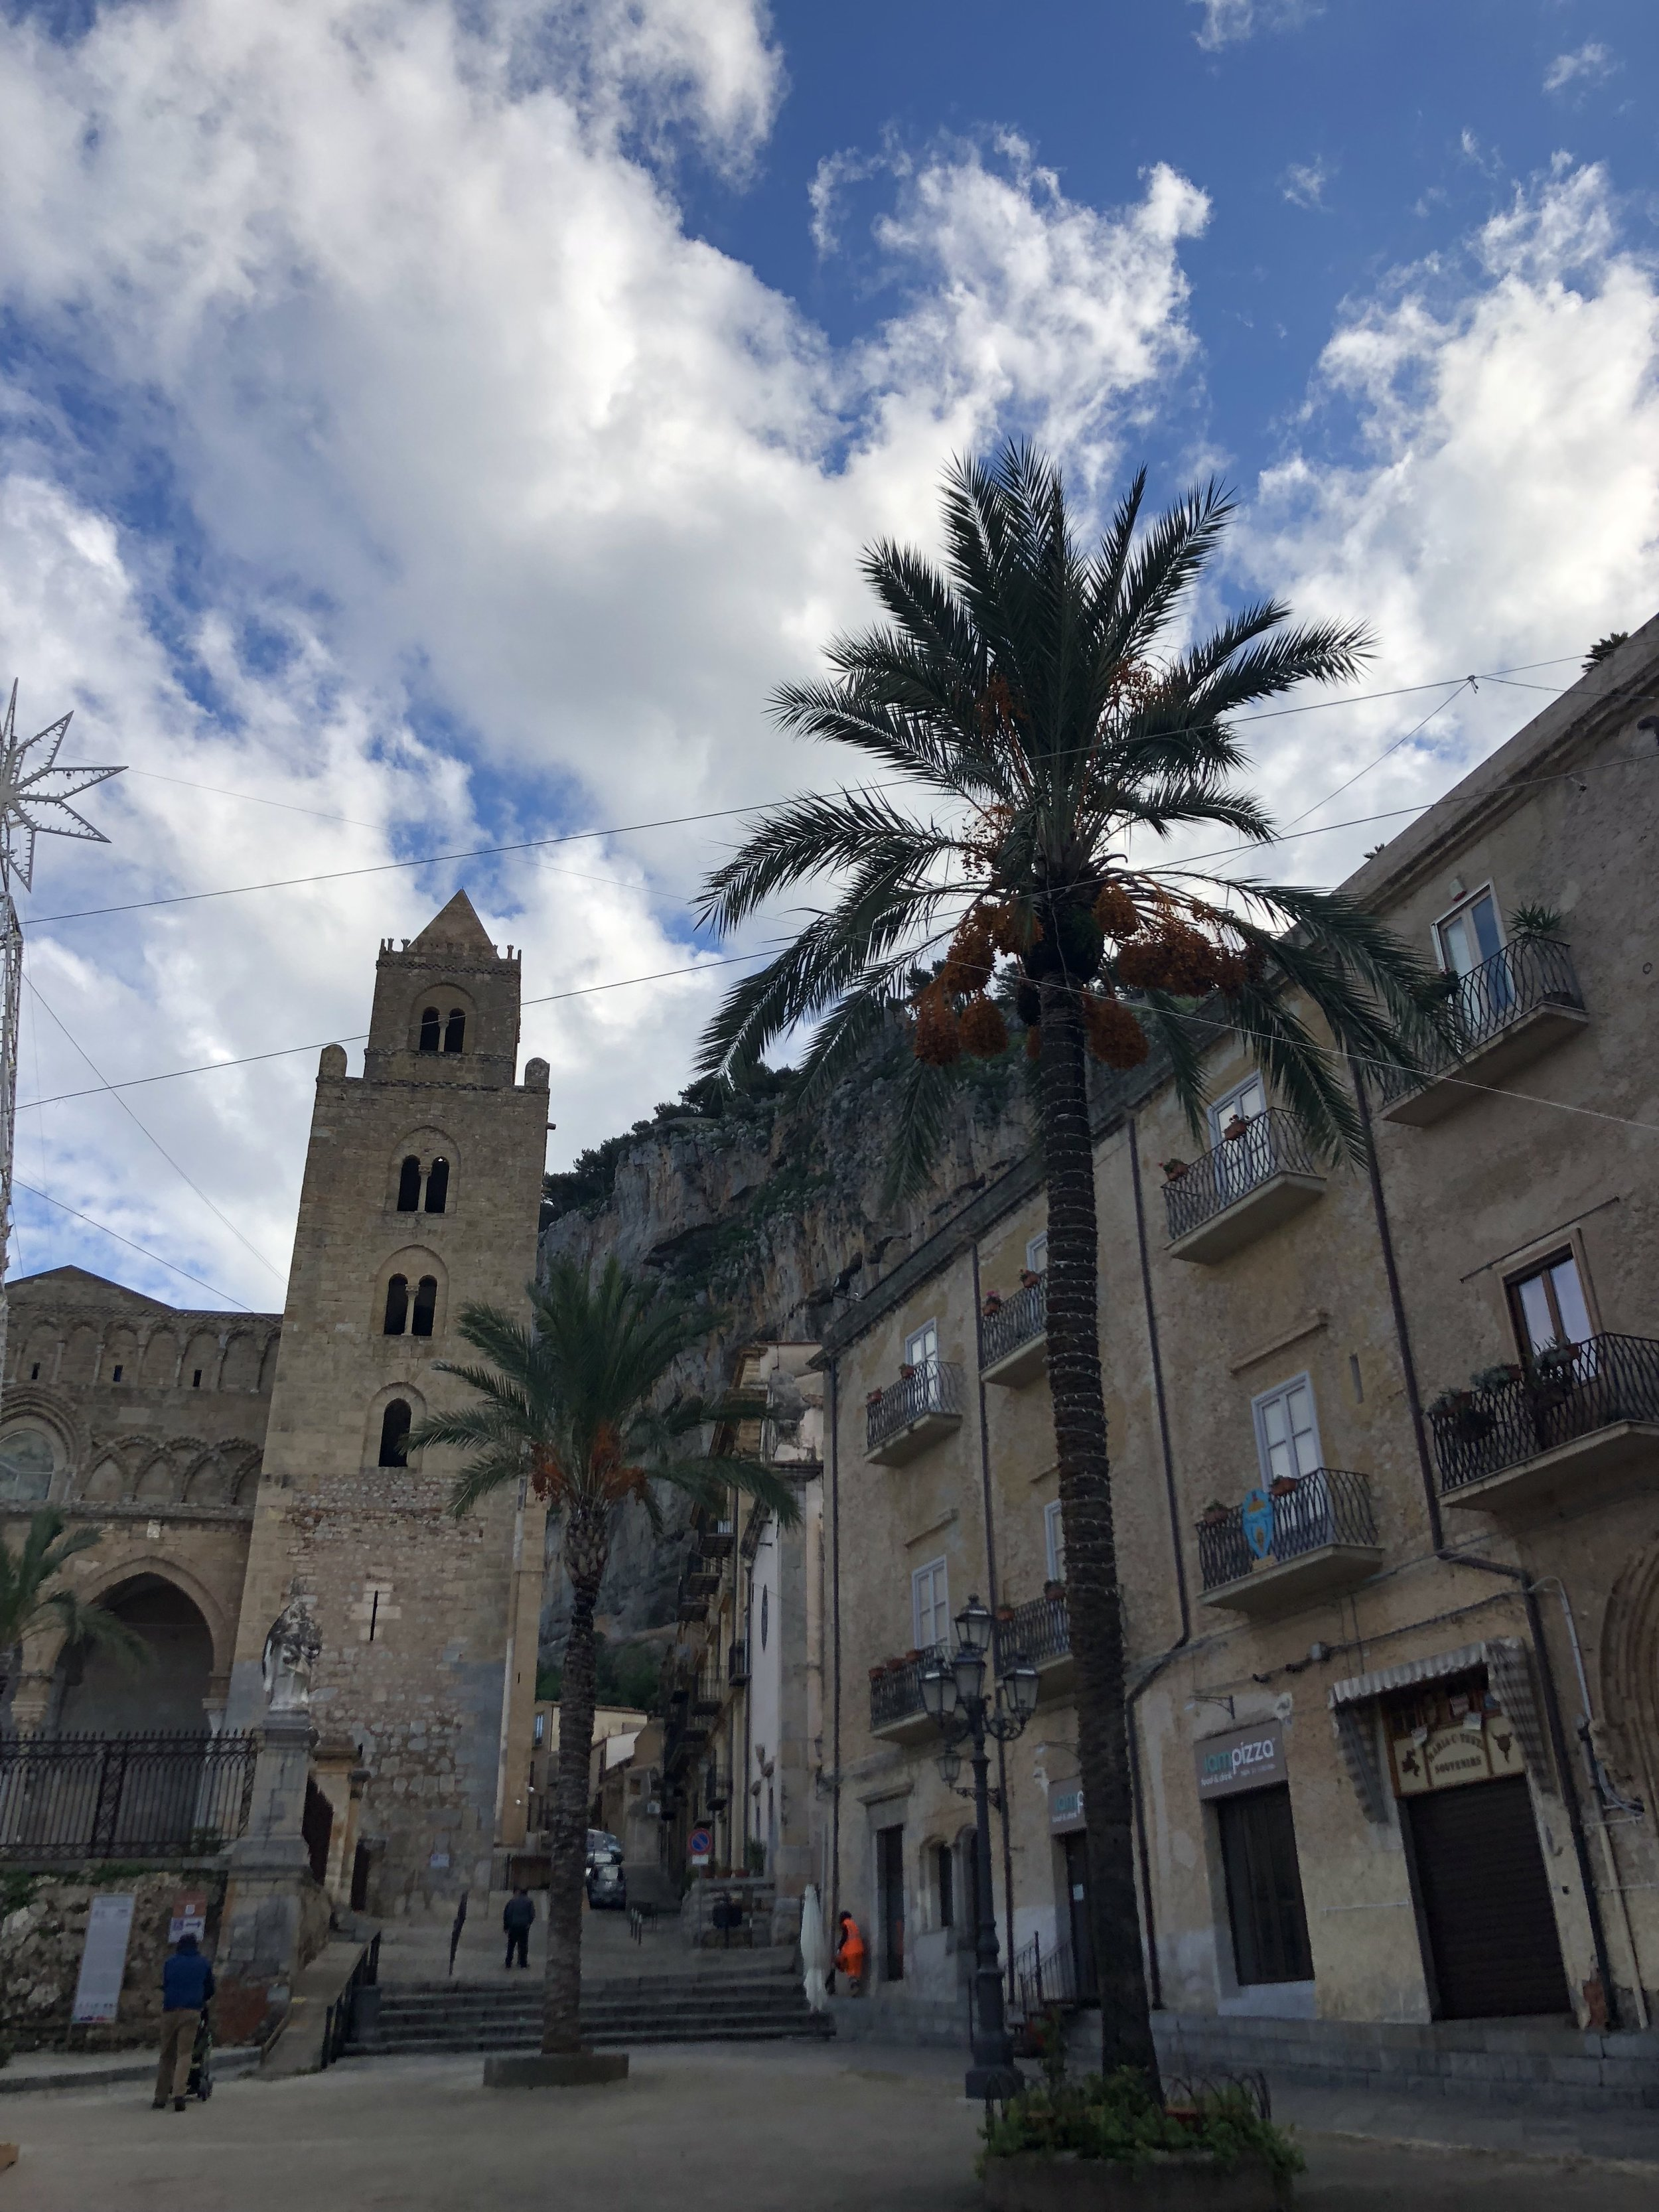 The historic area of Cefalu.